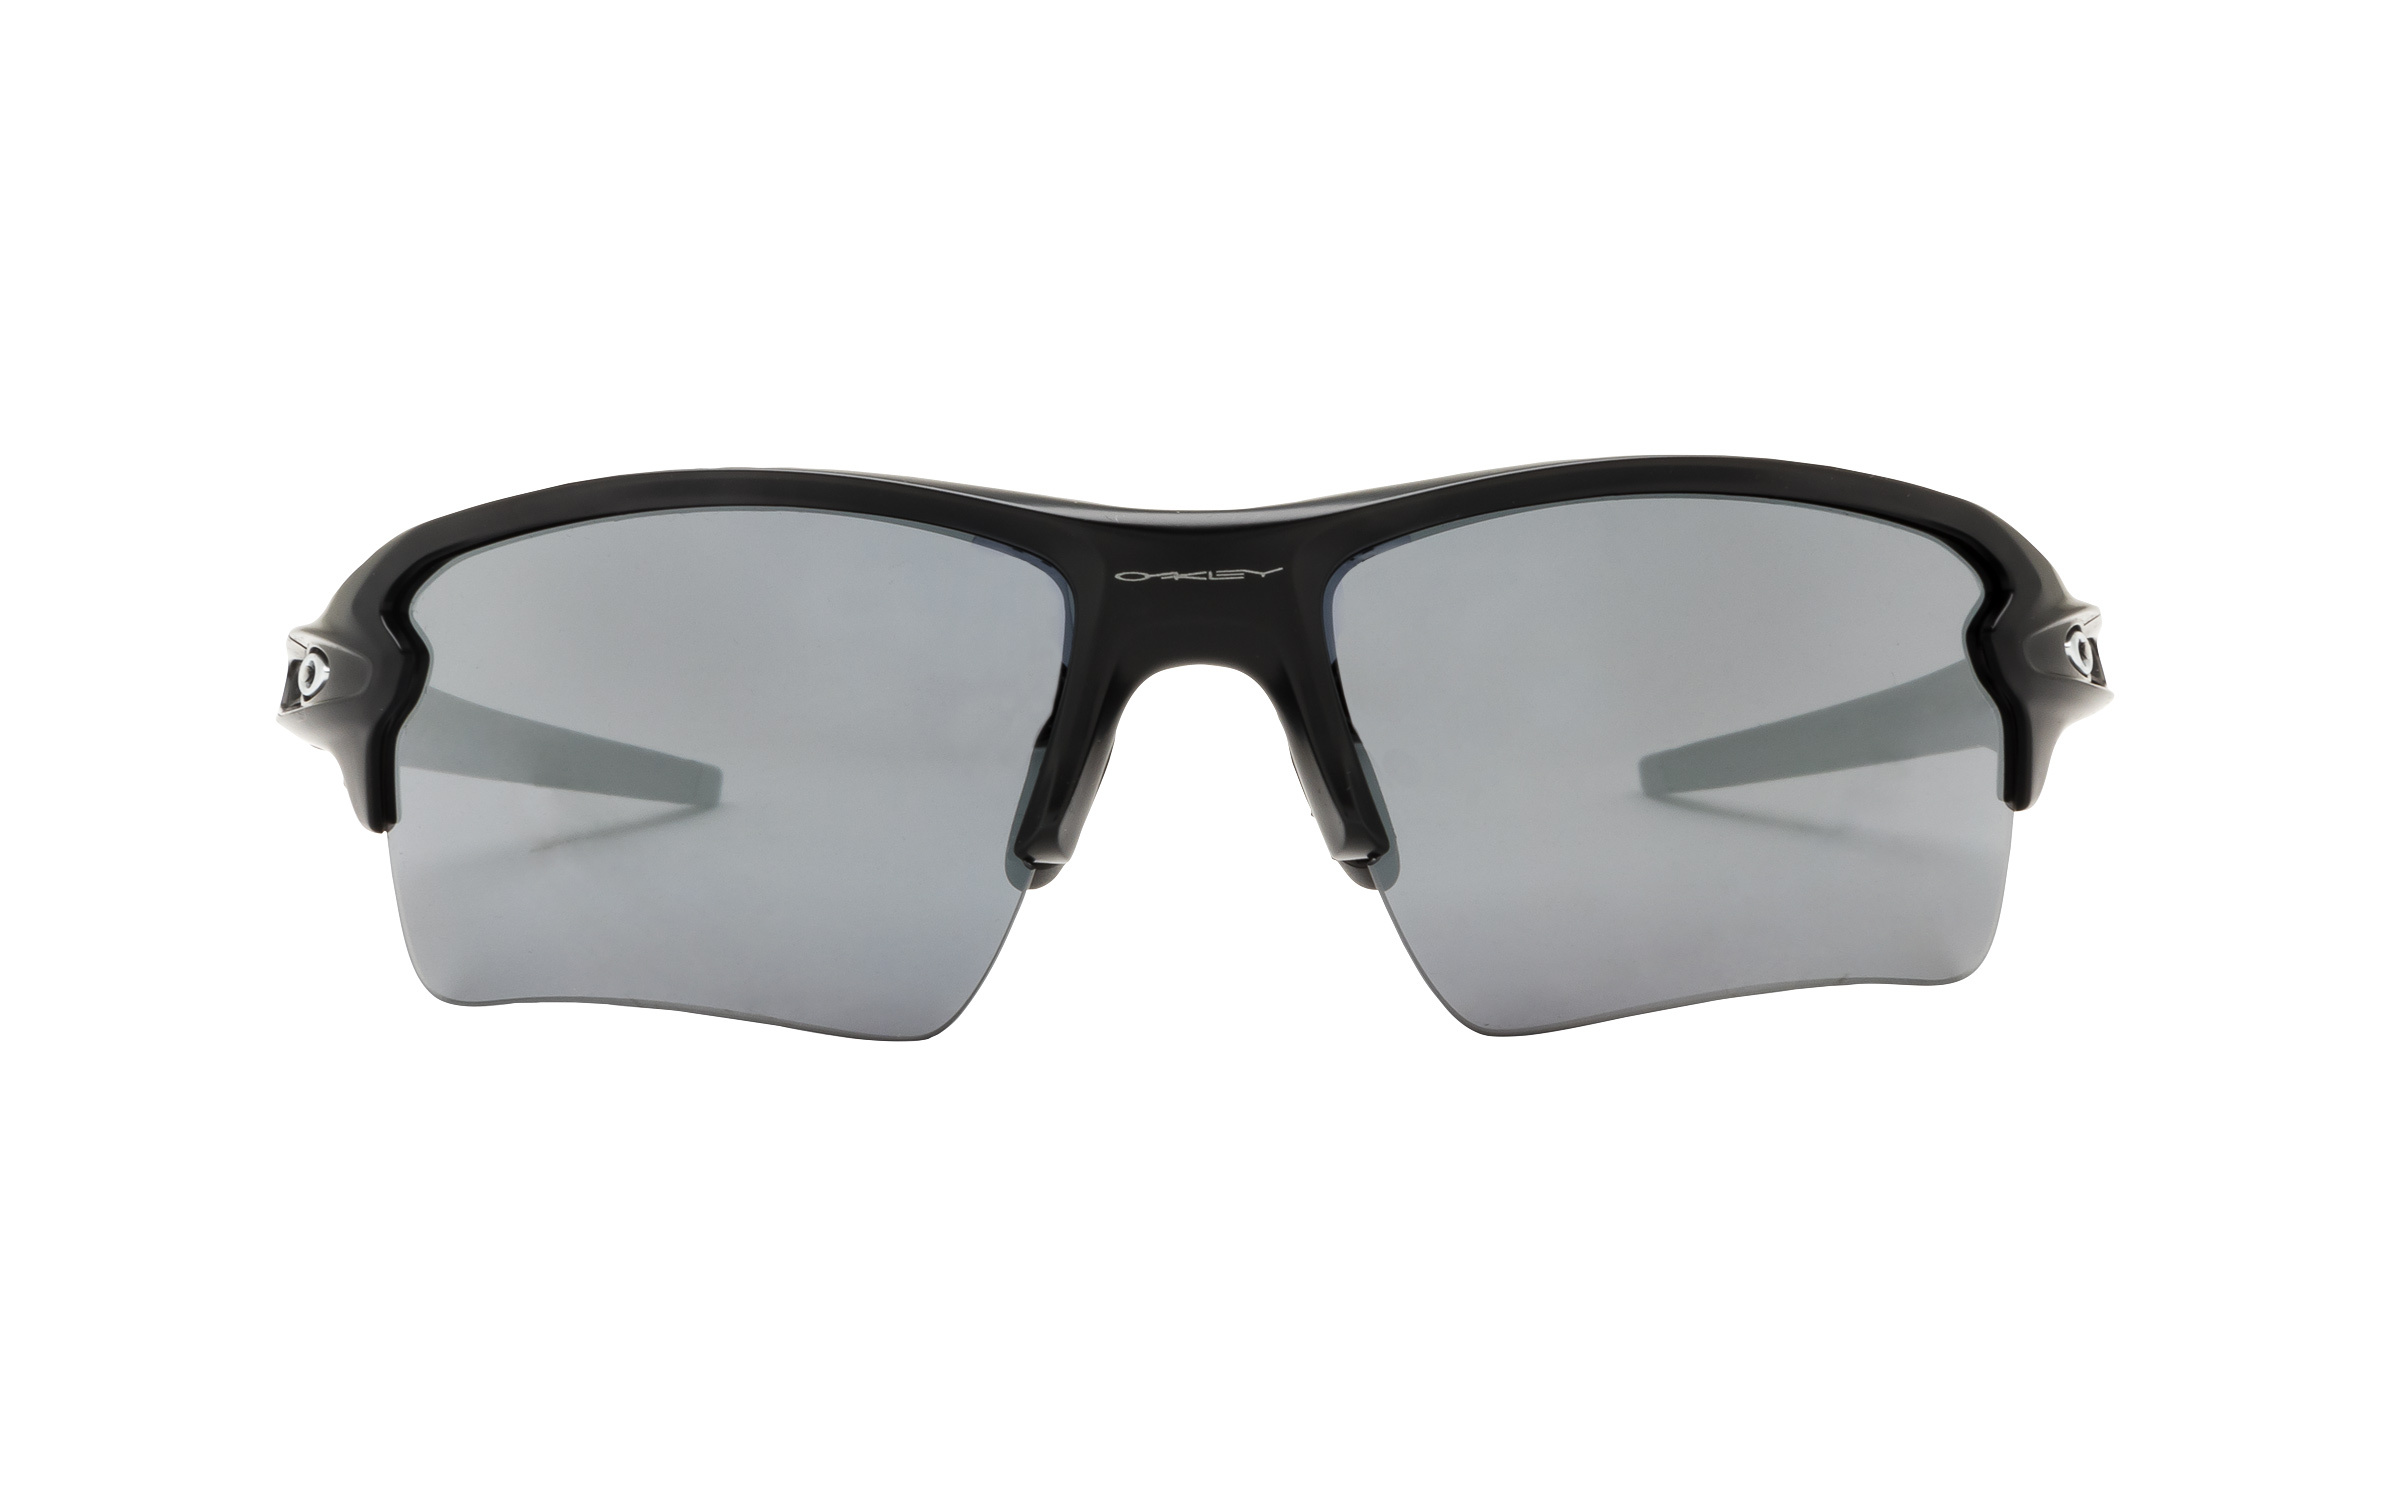 Oakley Flak 2.0 XL 9188 01 Matte Black Sunglasses